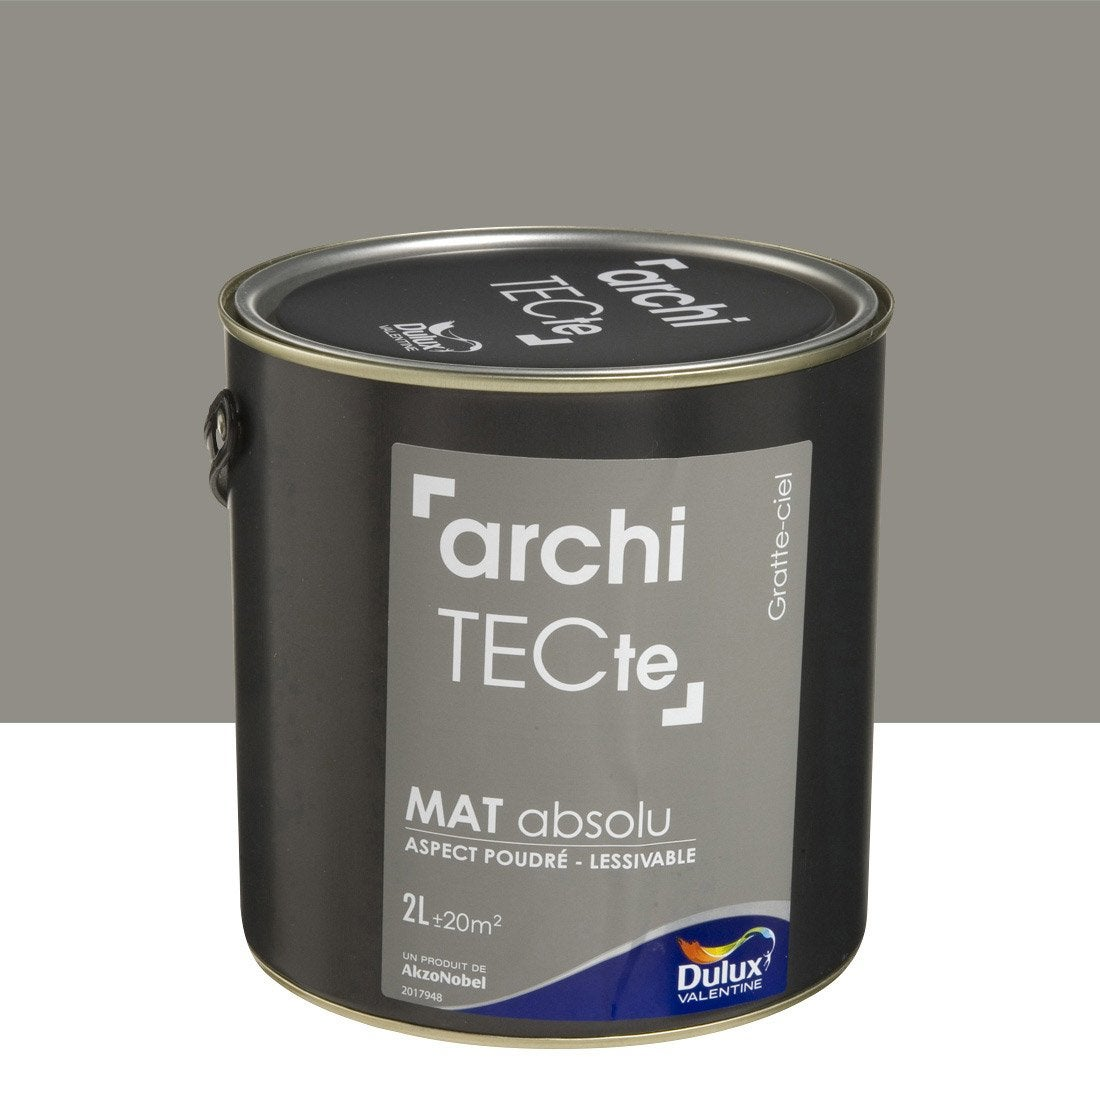 peinture gris gratte ciel dulux valentine architecte 2 l leroy merlin. Black Bedroom Furniture Sets. Home Design Ideas